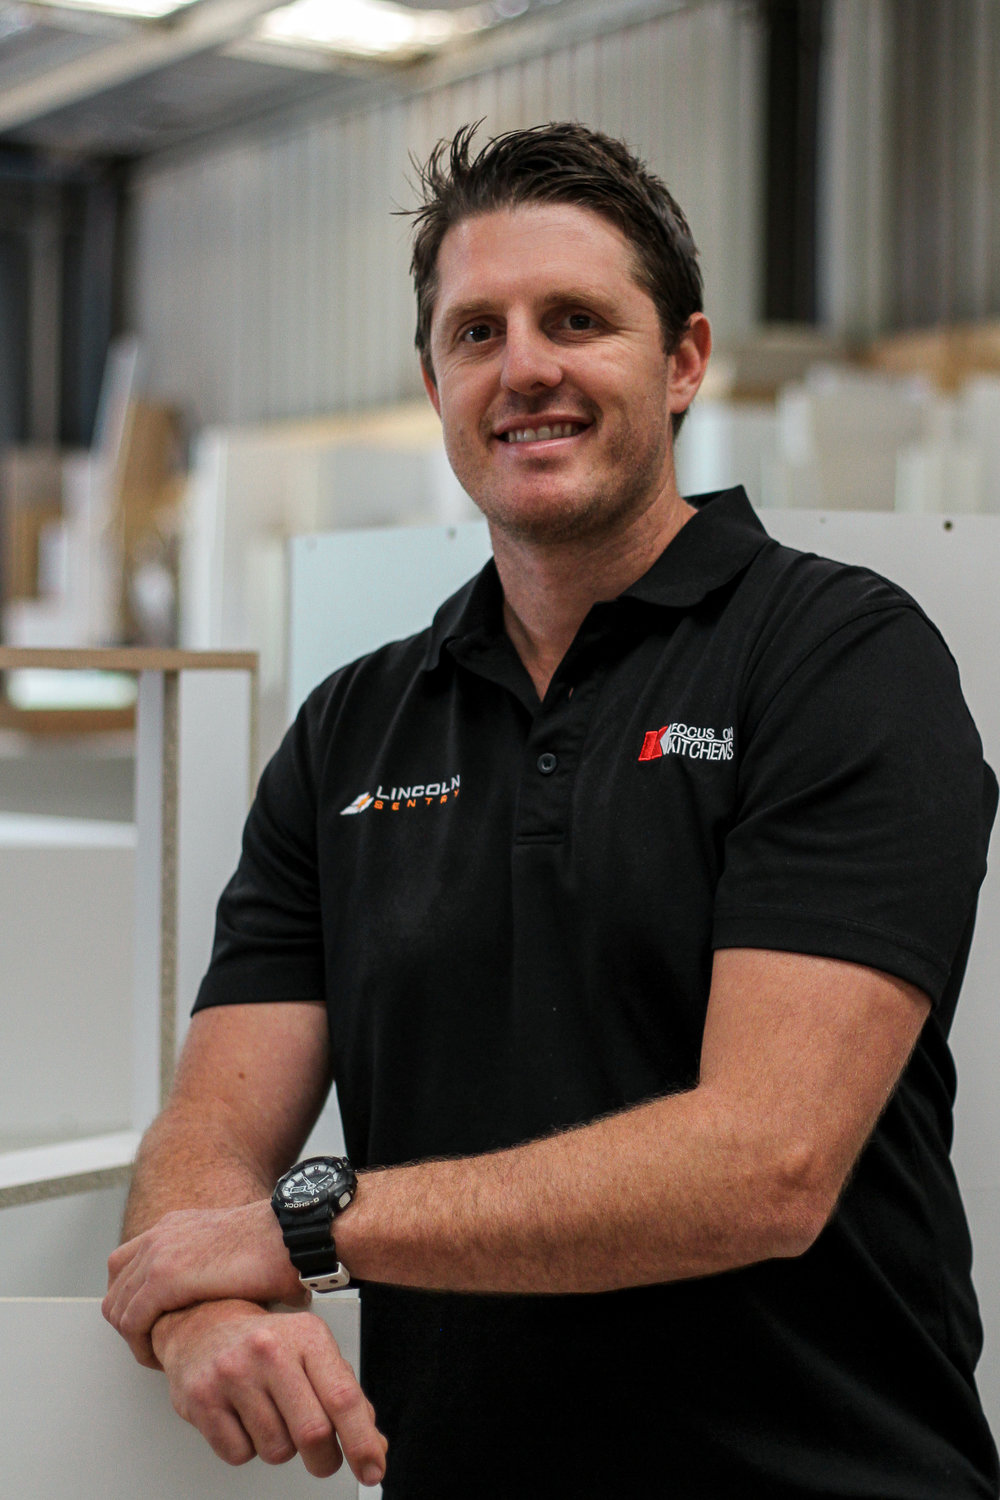 Shane Bidgood - Director - Owner & Co-Director Shane started his apprenticeship at Focus on Kitchens in 1999. Shane has a passion for quality and detail and will oversee the manufacture & installation of your new joinery.